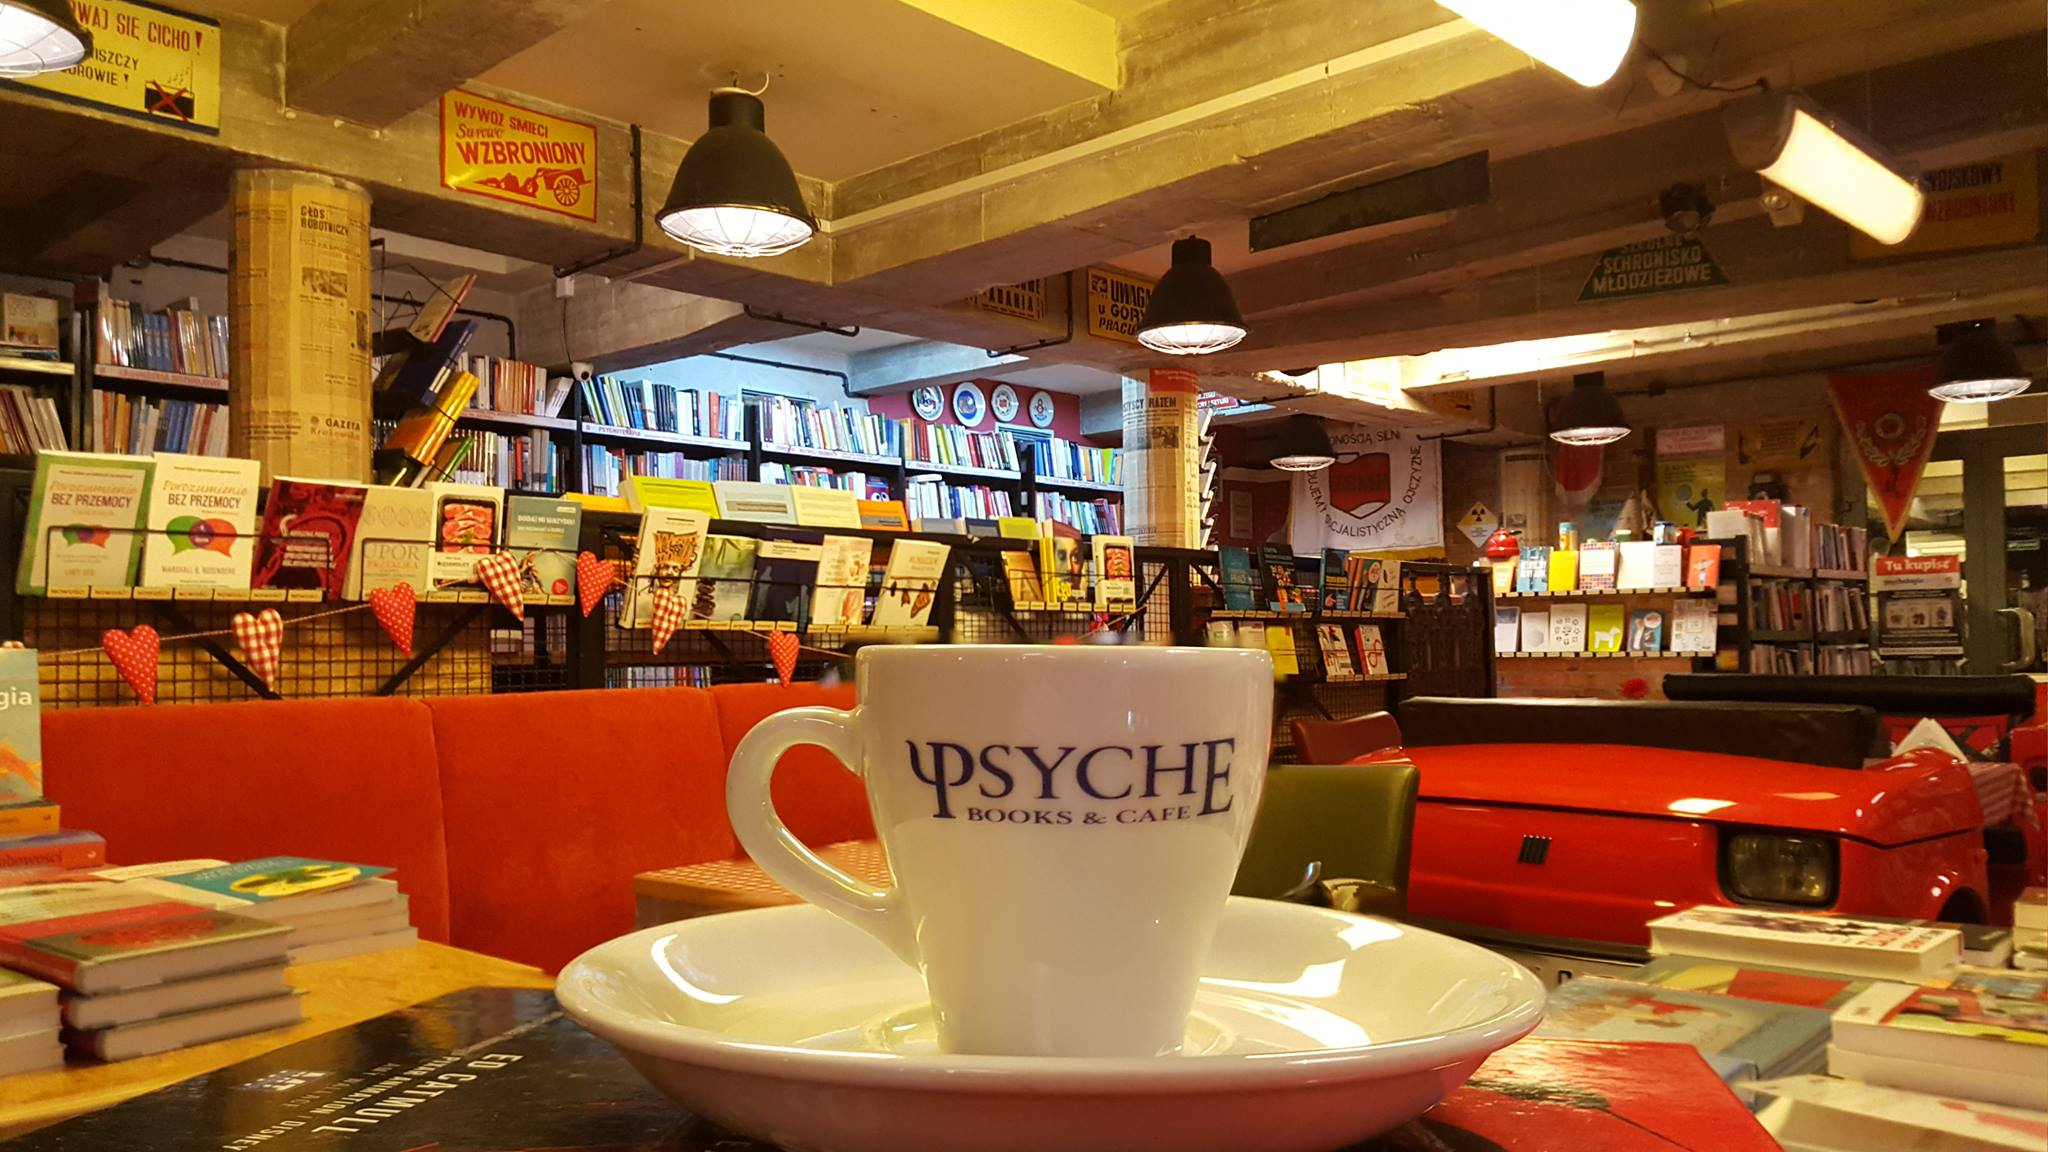 Psyche Books&Cafe